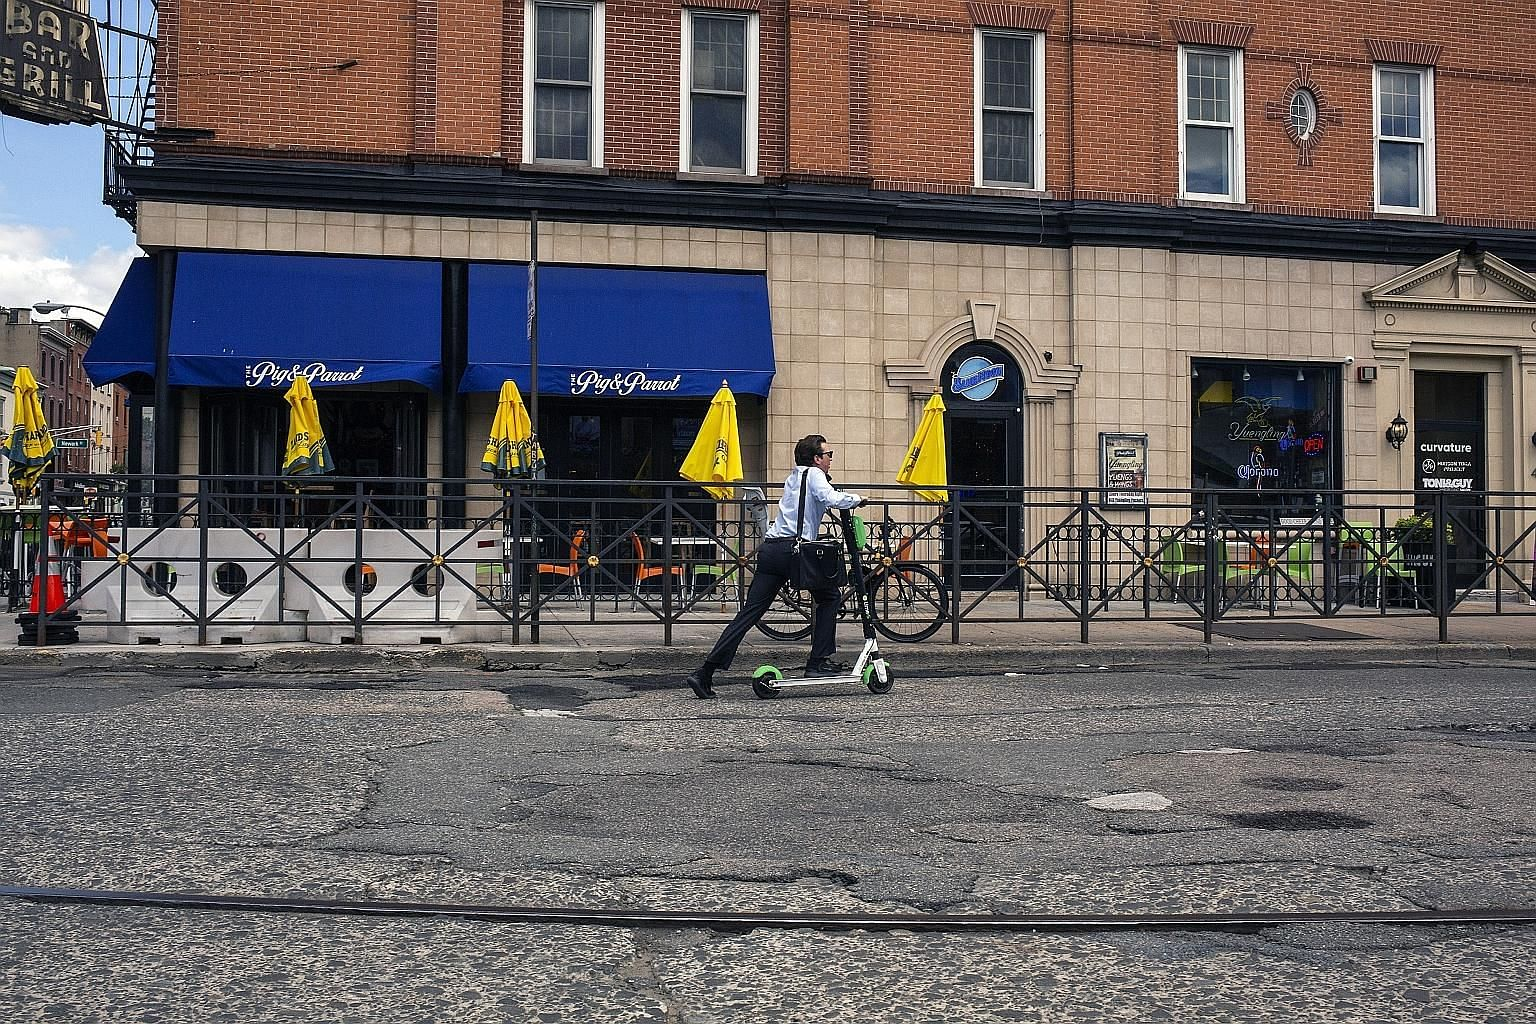 A man riding a scooter in Hoboken, New Jersey. The city had approved a six-month pilot programme with two e-scooter providers in May, but cancelled a contract with one. The pilot is due to end on Nov 20.